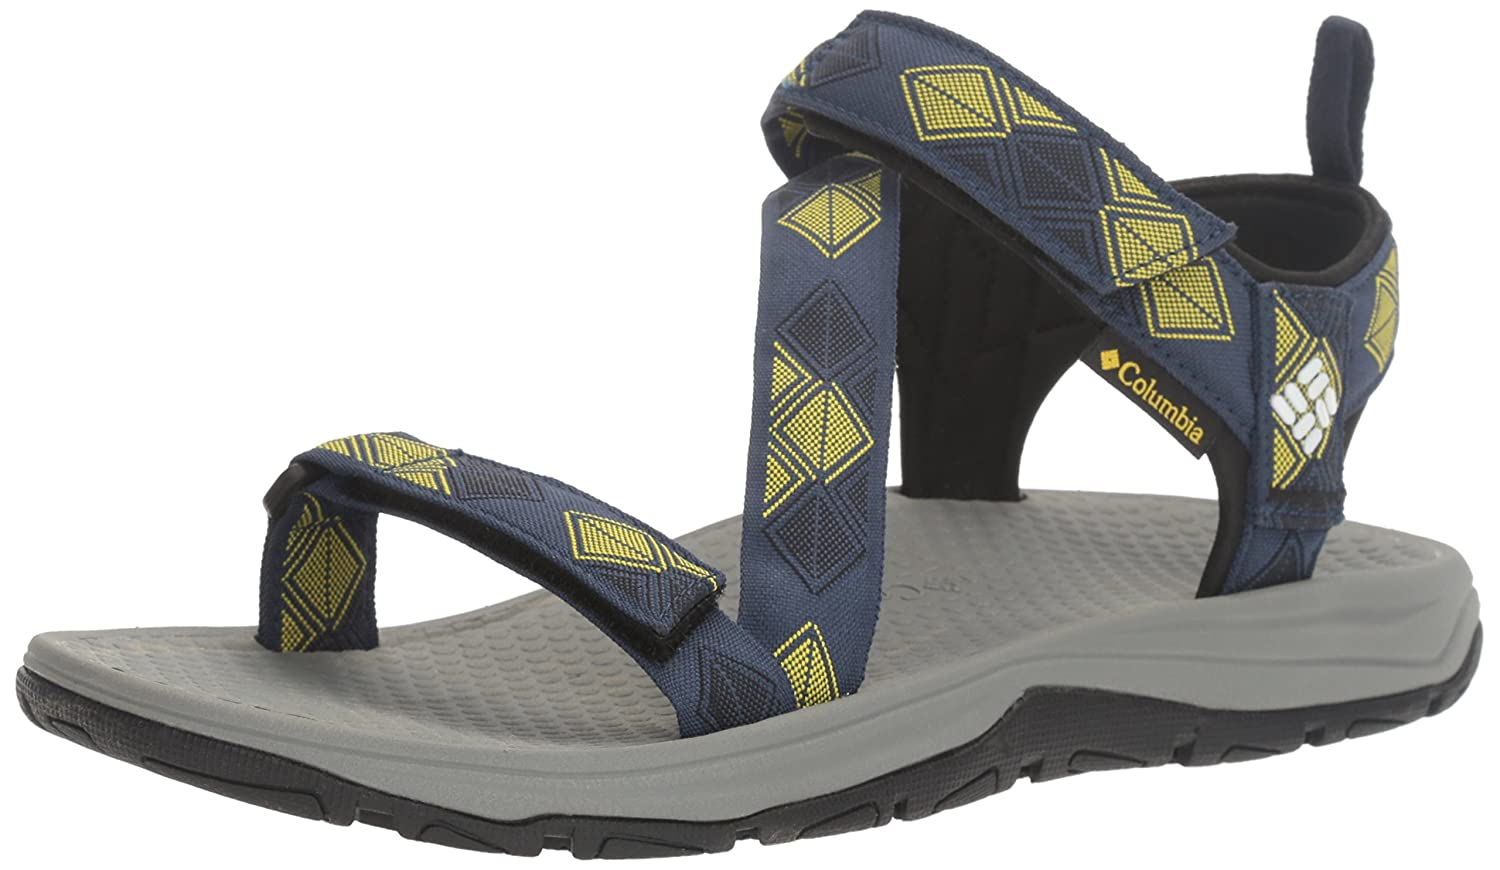 2cde2ec3 Amazon.com | Columbia Men's Wave Train Athletic Sandal | Sport Sandals &  Slides